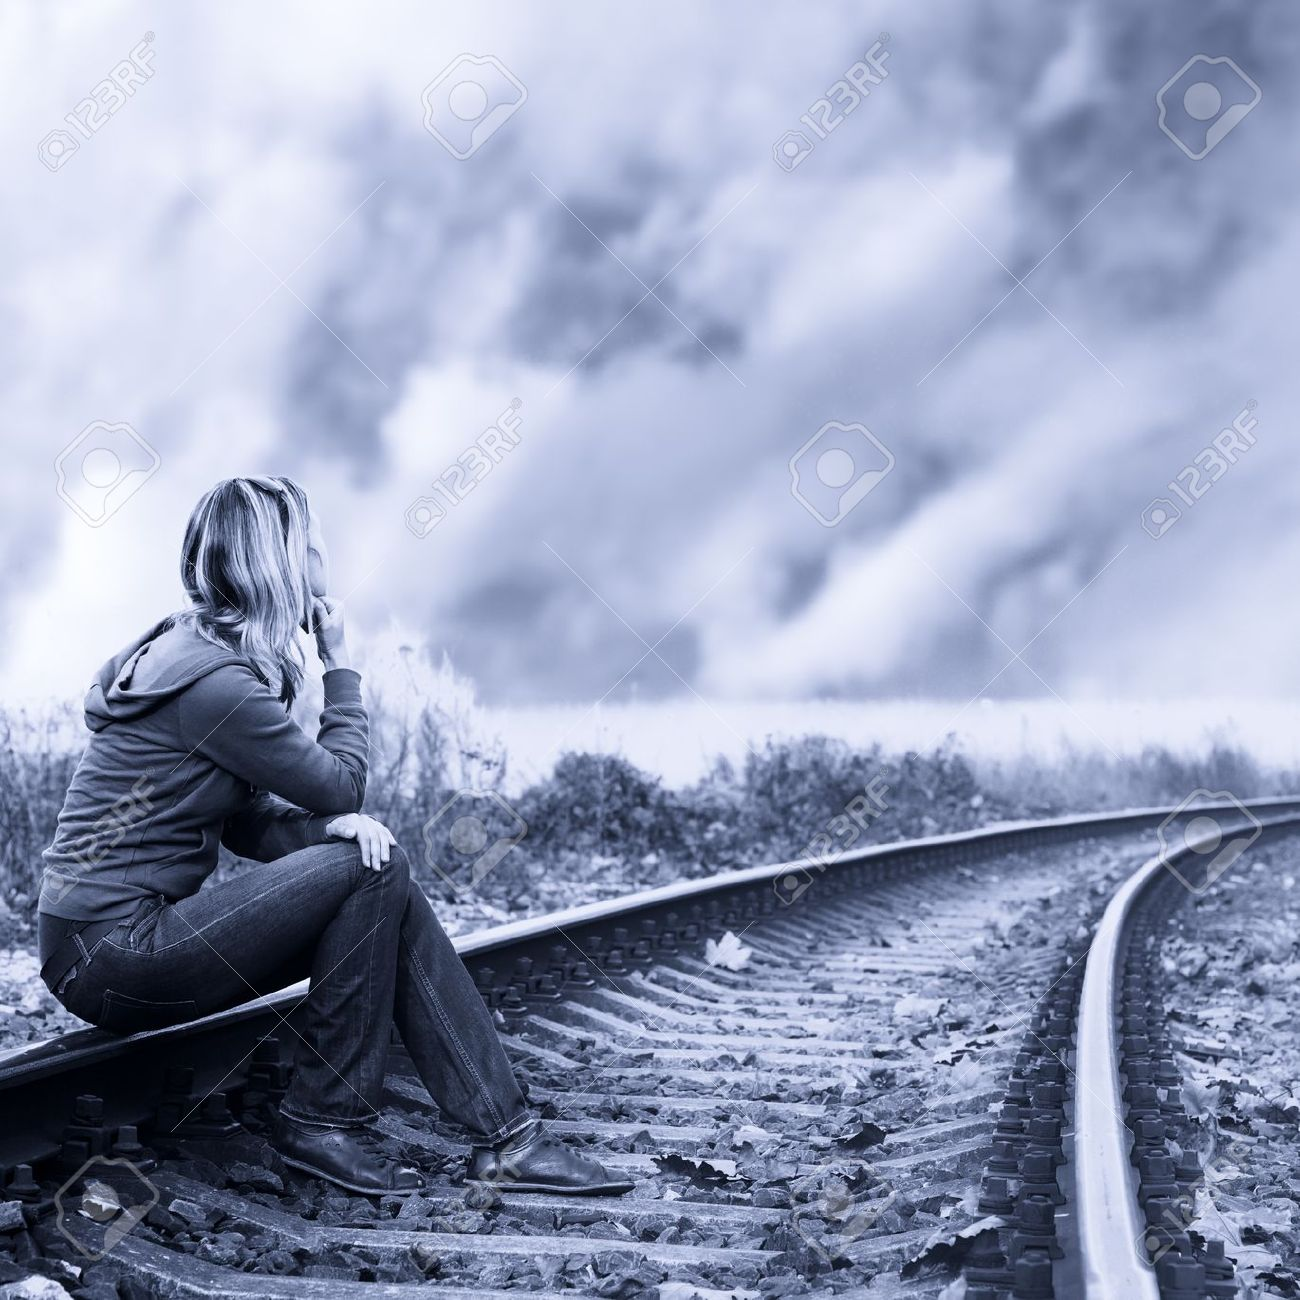 Lonely woman sitting on the rails and thinking - 13546273